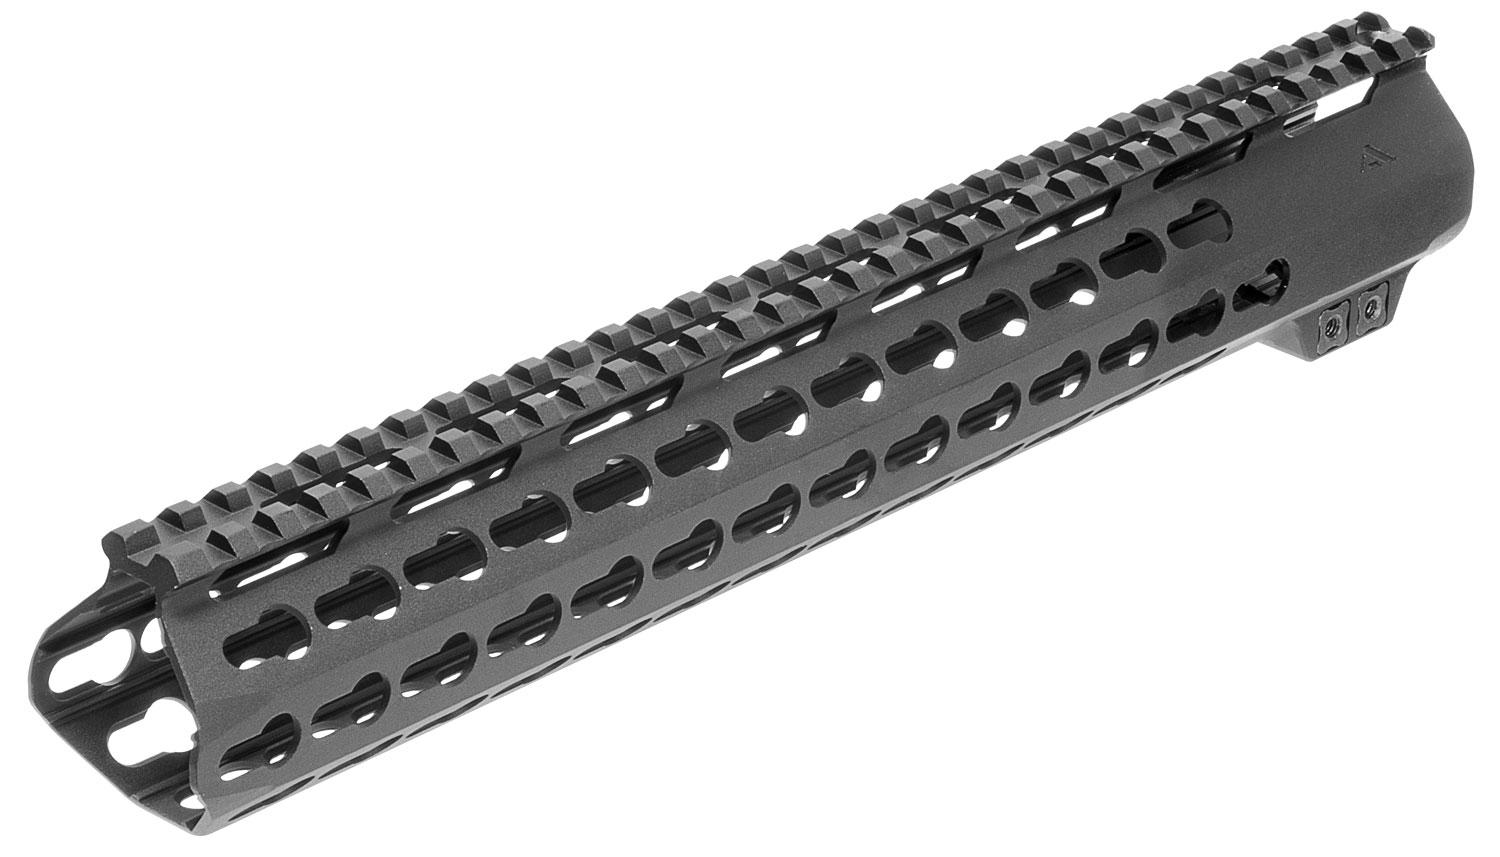 Aim Sports Mtm13h308 Ar M- Lok Handguard Rifle 6061- T6 Aluminum Black Hard Coat Anodized High 13.5